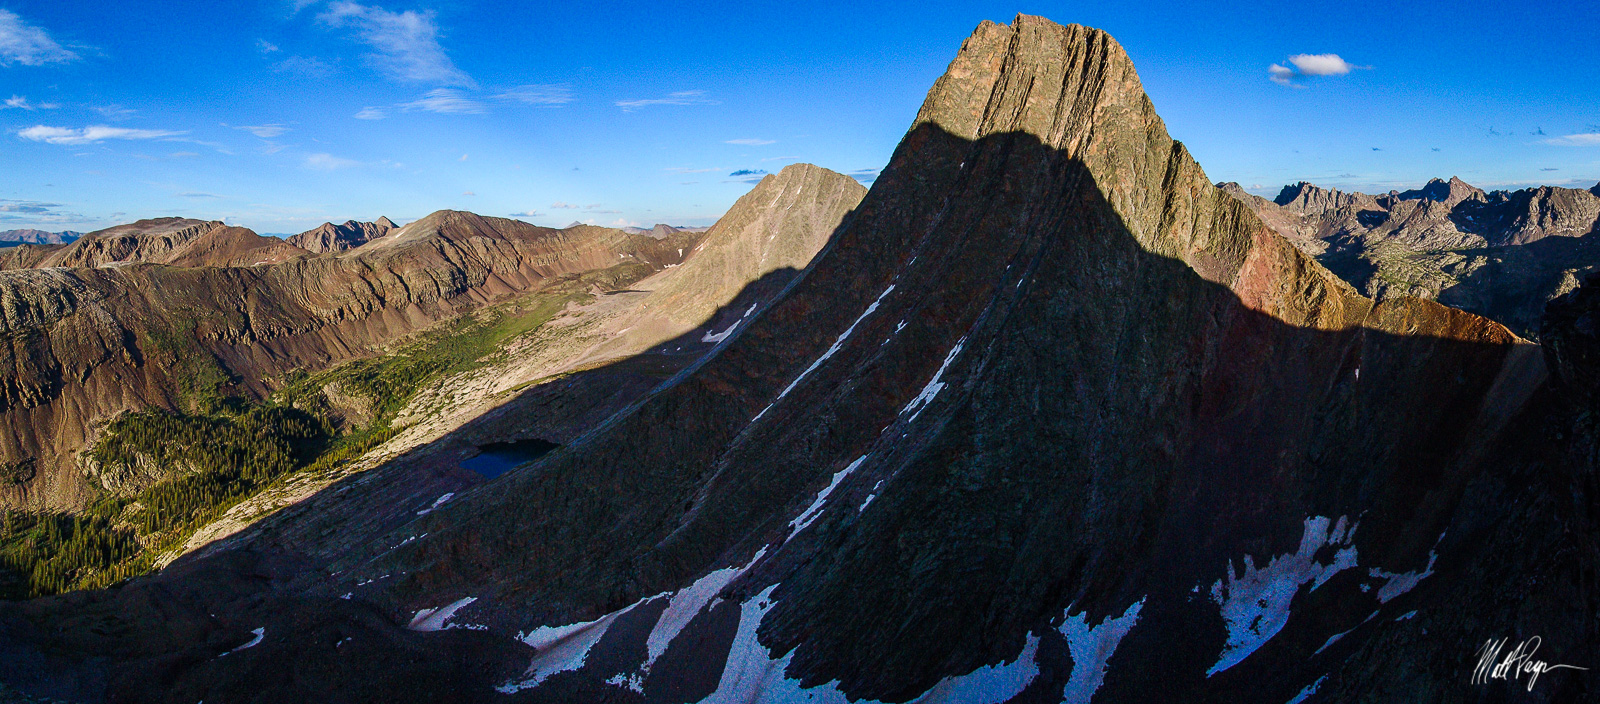 This is the famous view of Vestal Peak's Wham Ridge, taken from the side of Arrow Peak near sunset.